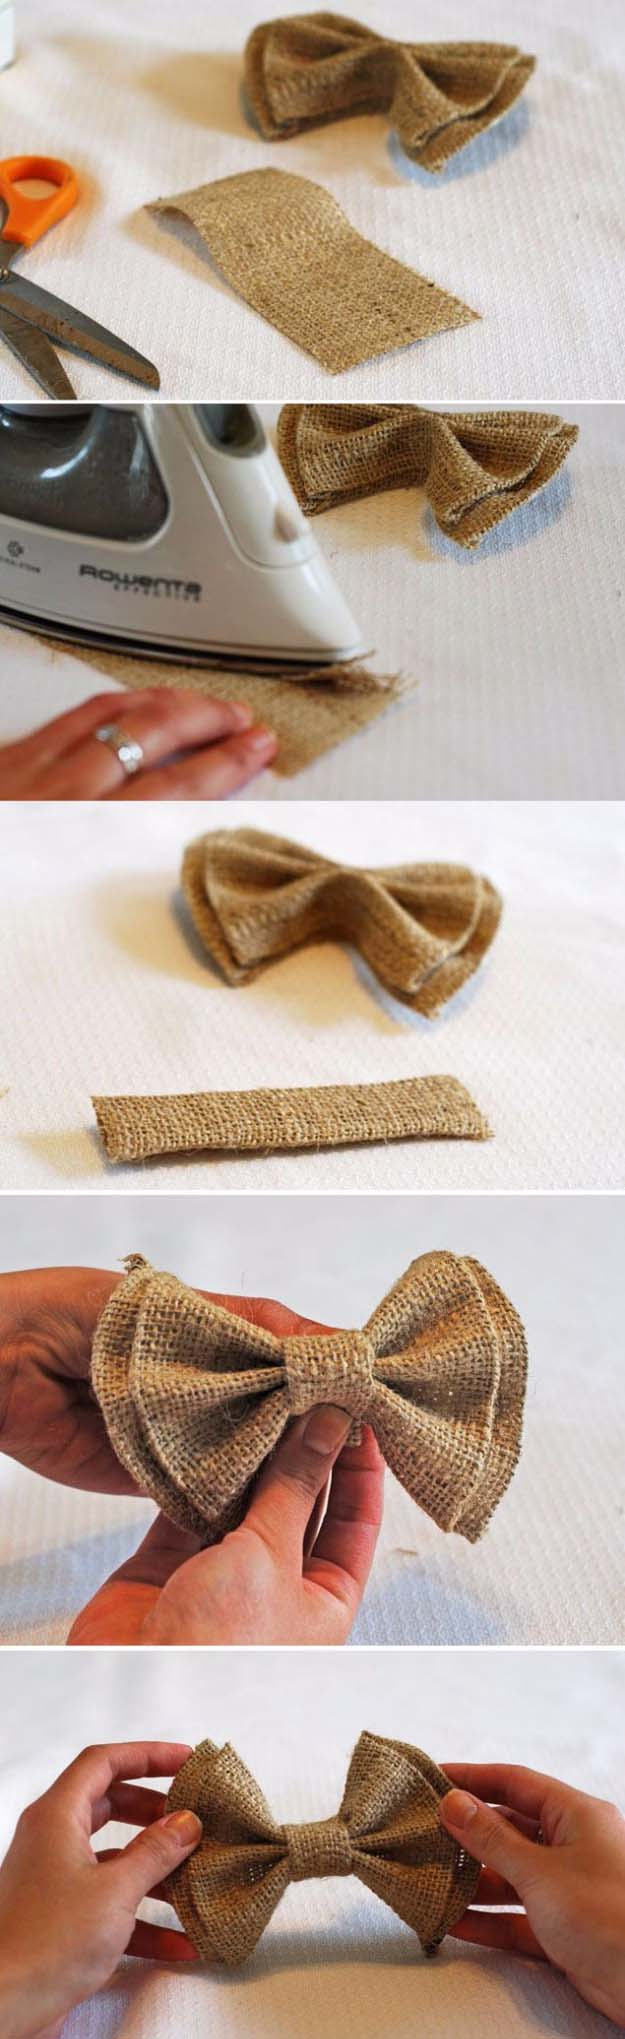 DIY Projects with Burlap and Creative Burlap Crafts for Home Decor, Gifts and More | No Sew DIY Clip Burlap Bow Ties